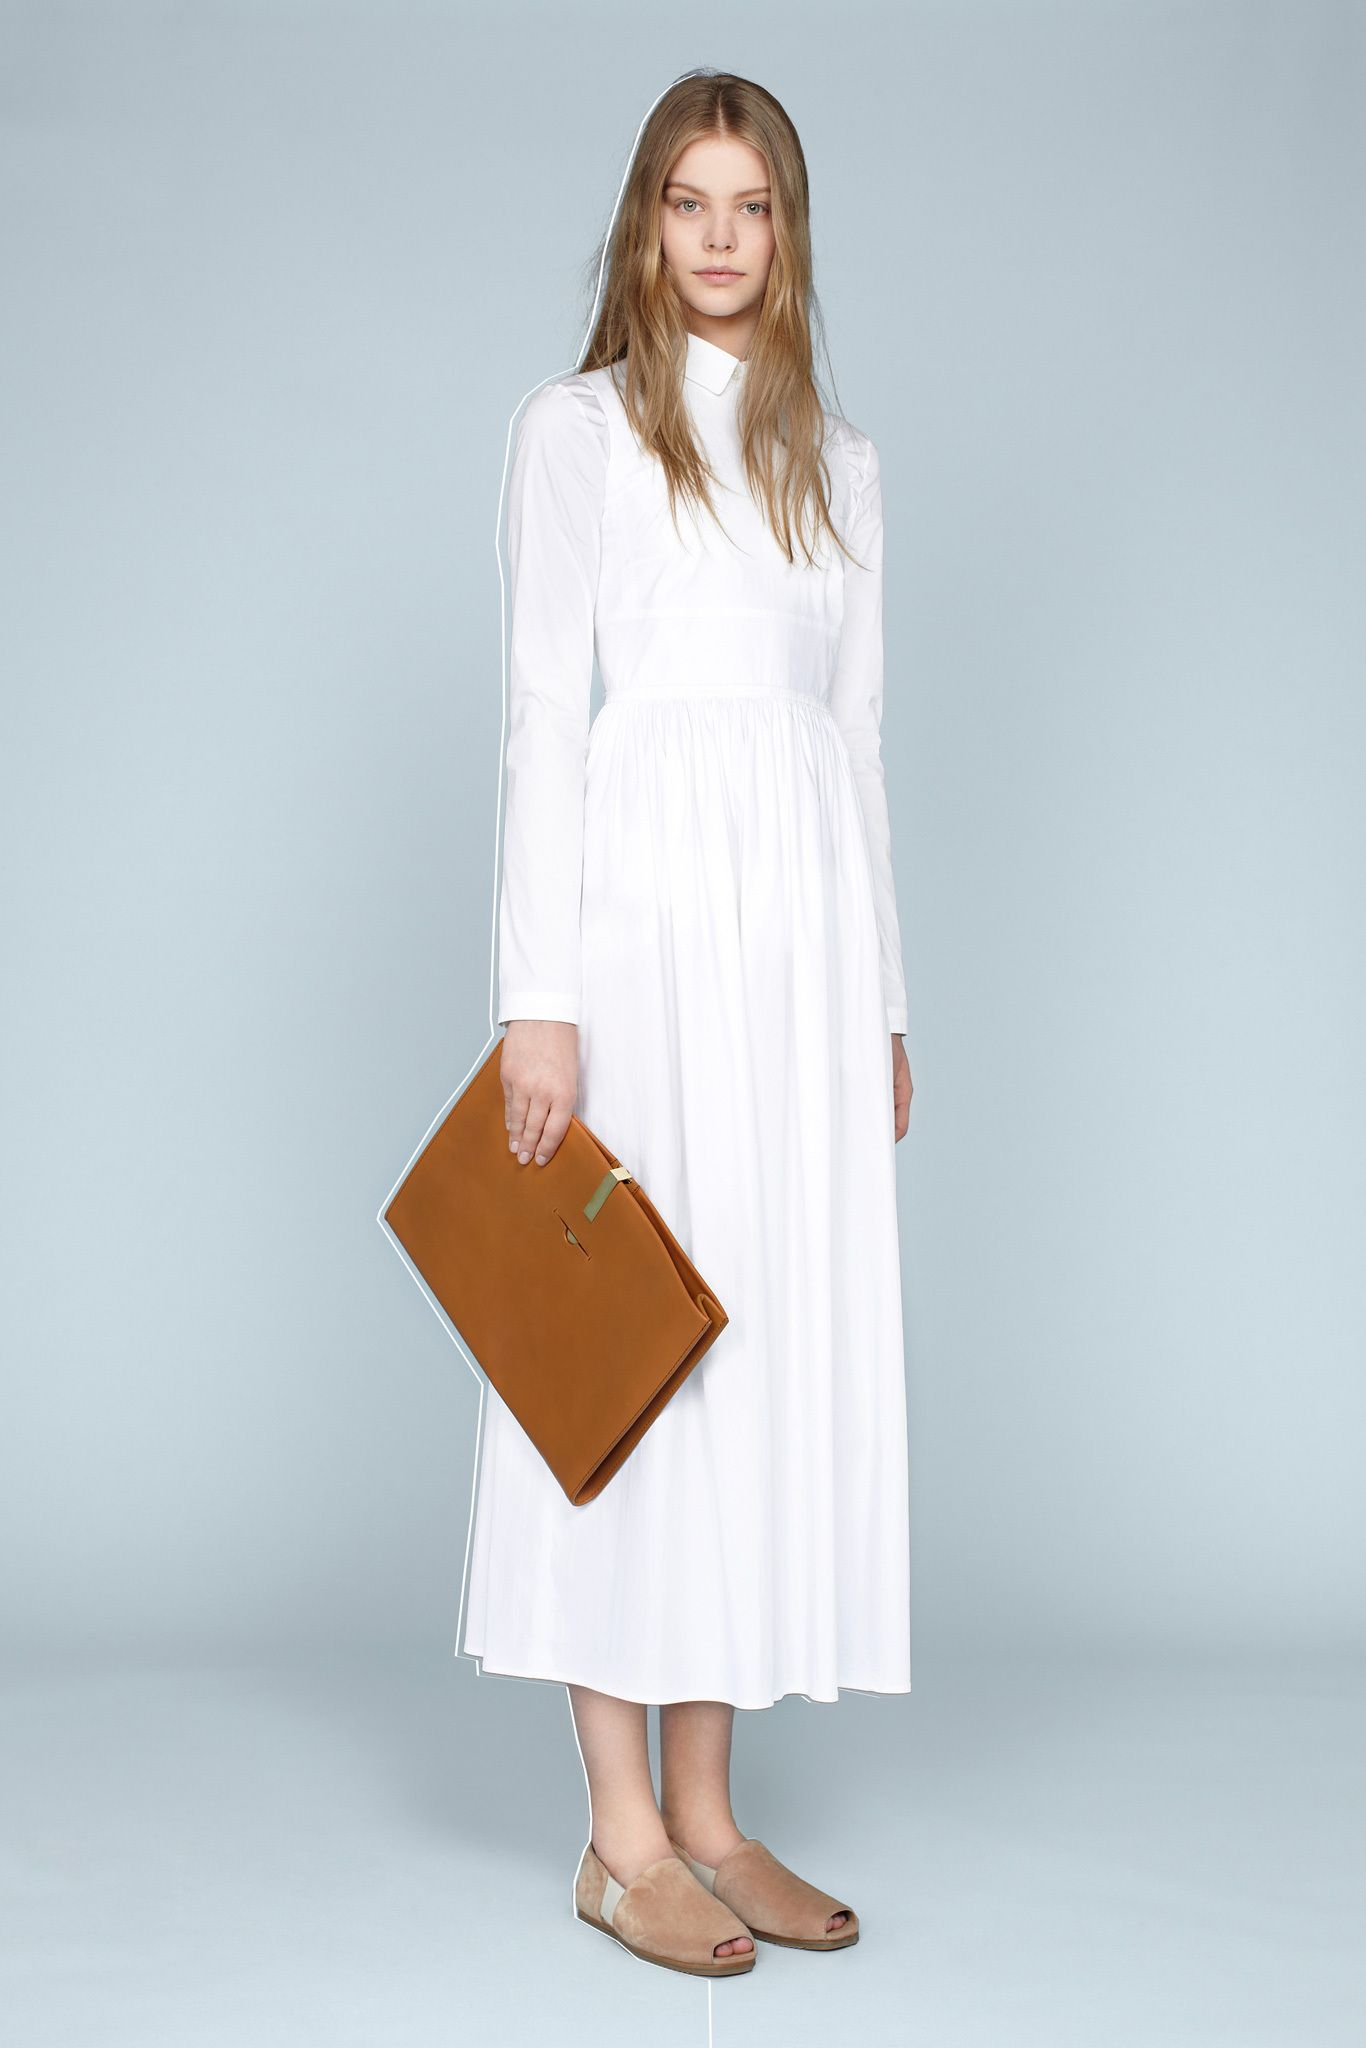 The Row Resort 2014 - Collection - Gallery - Style.com